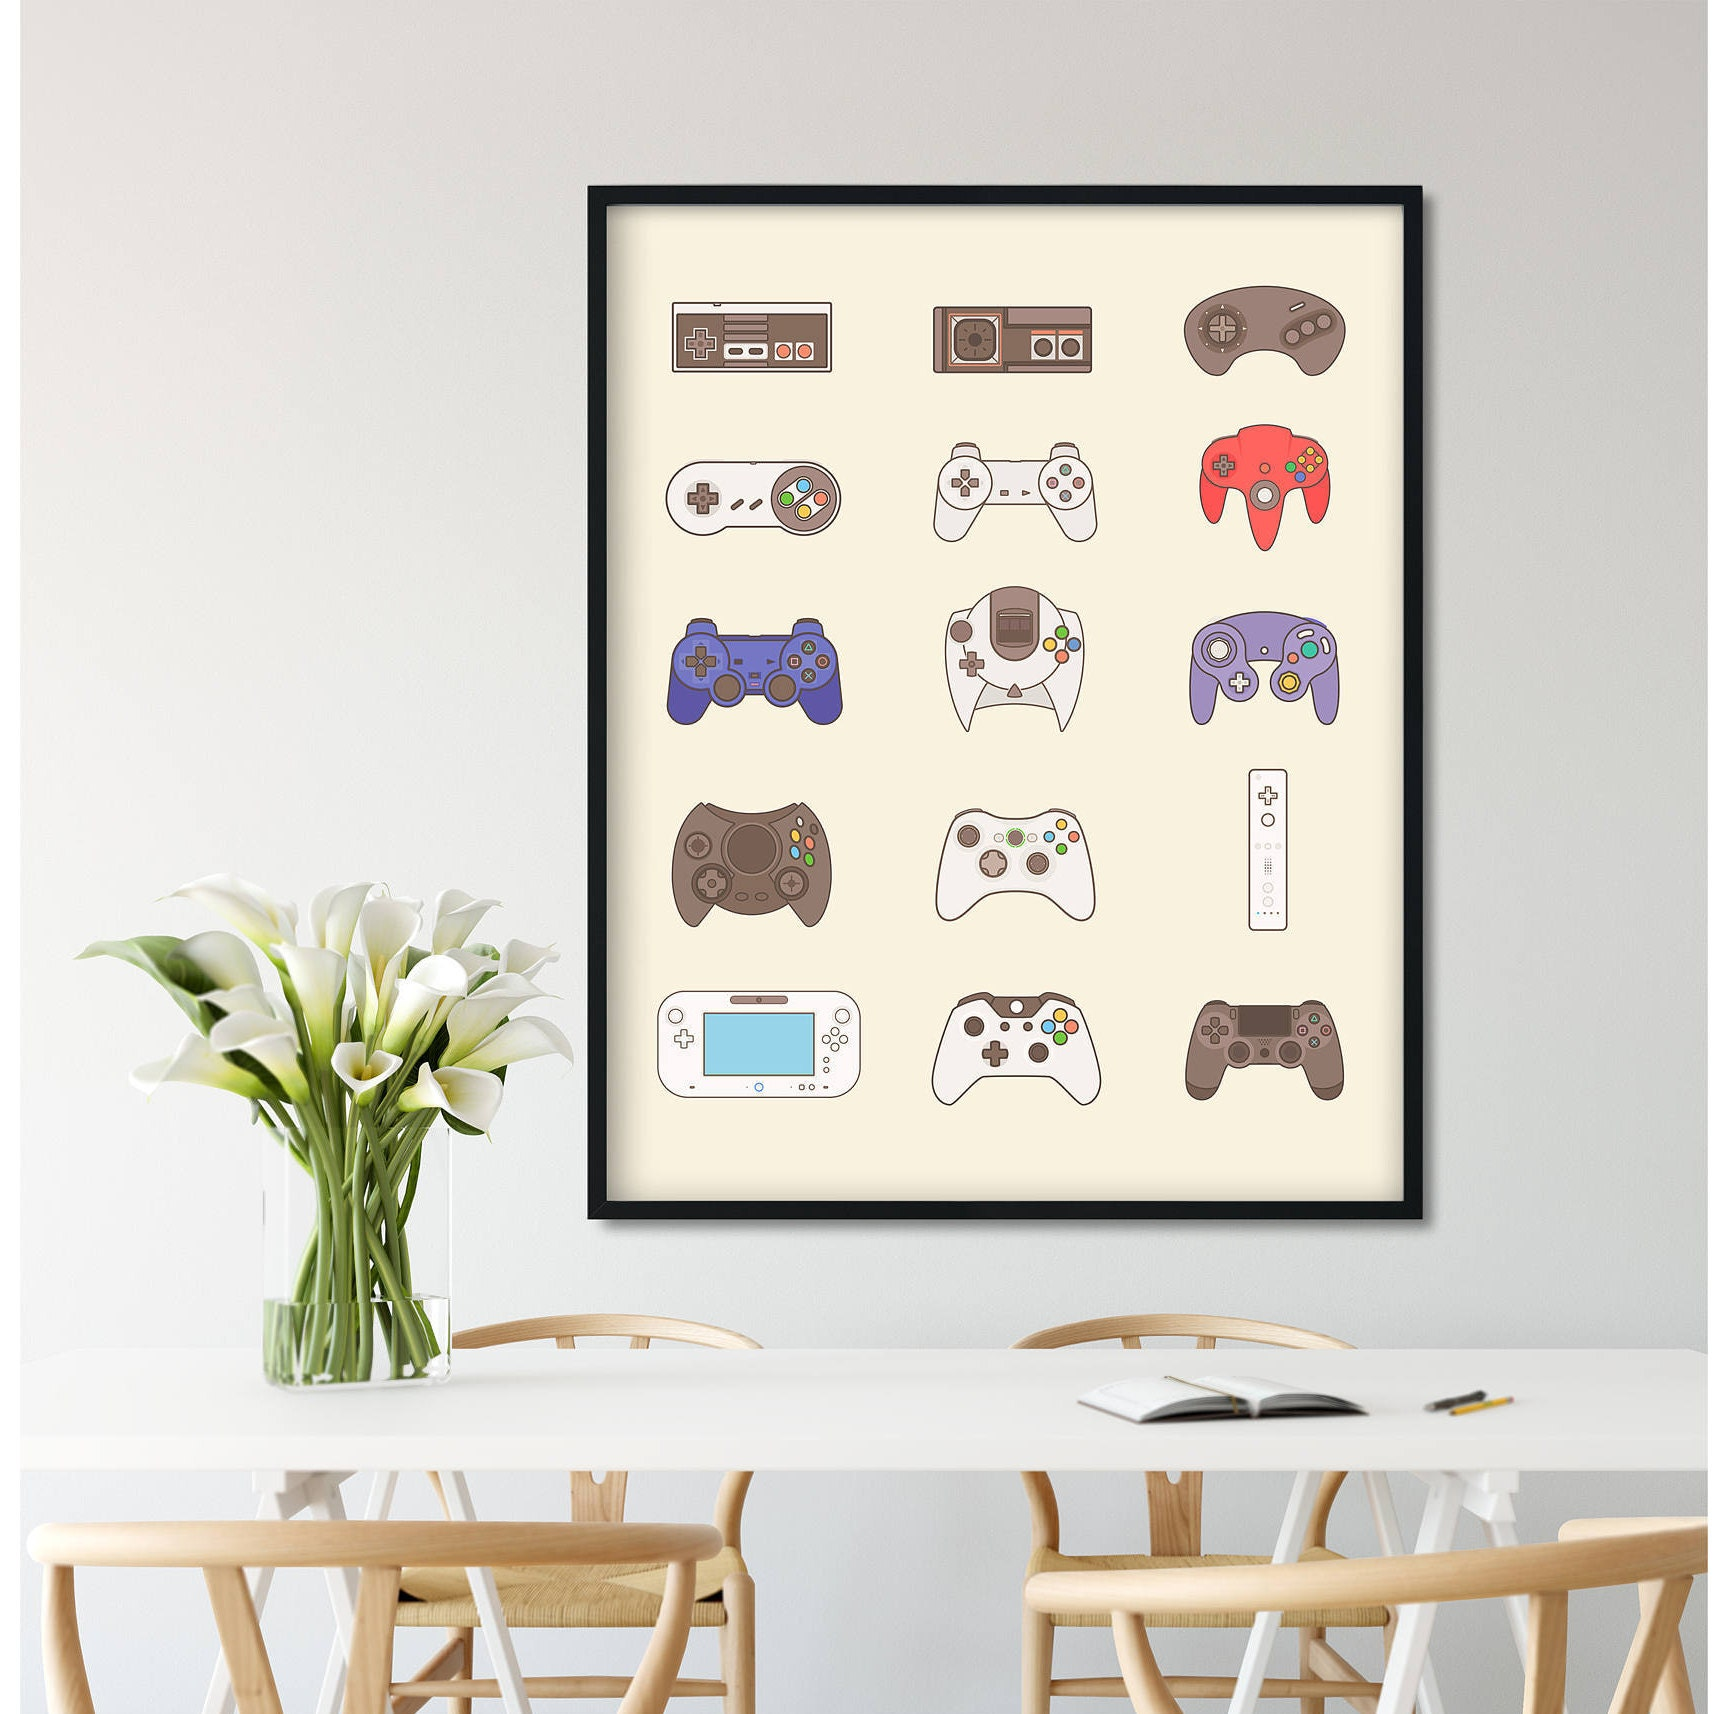 Video game controller video game poster video game decor description video game poster wall amipublicfo Choice Image